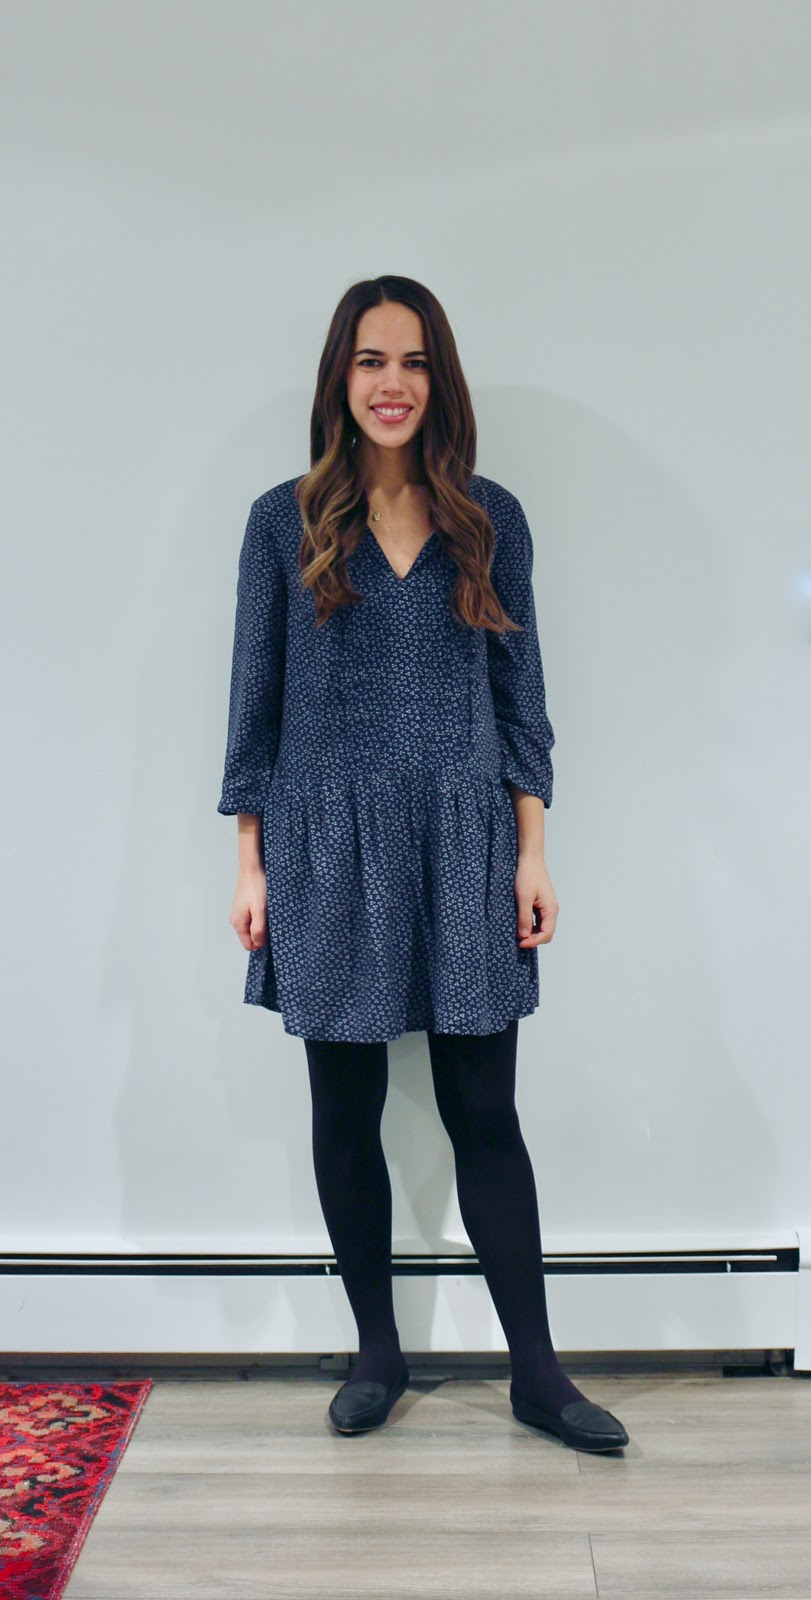 Jules in Flats - Old Navy Pleated Tie Neck Swing Dress (Business Casual Winter Workwear on a Budget)